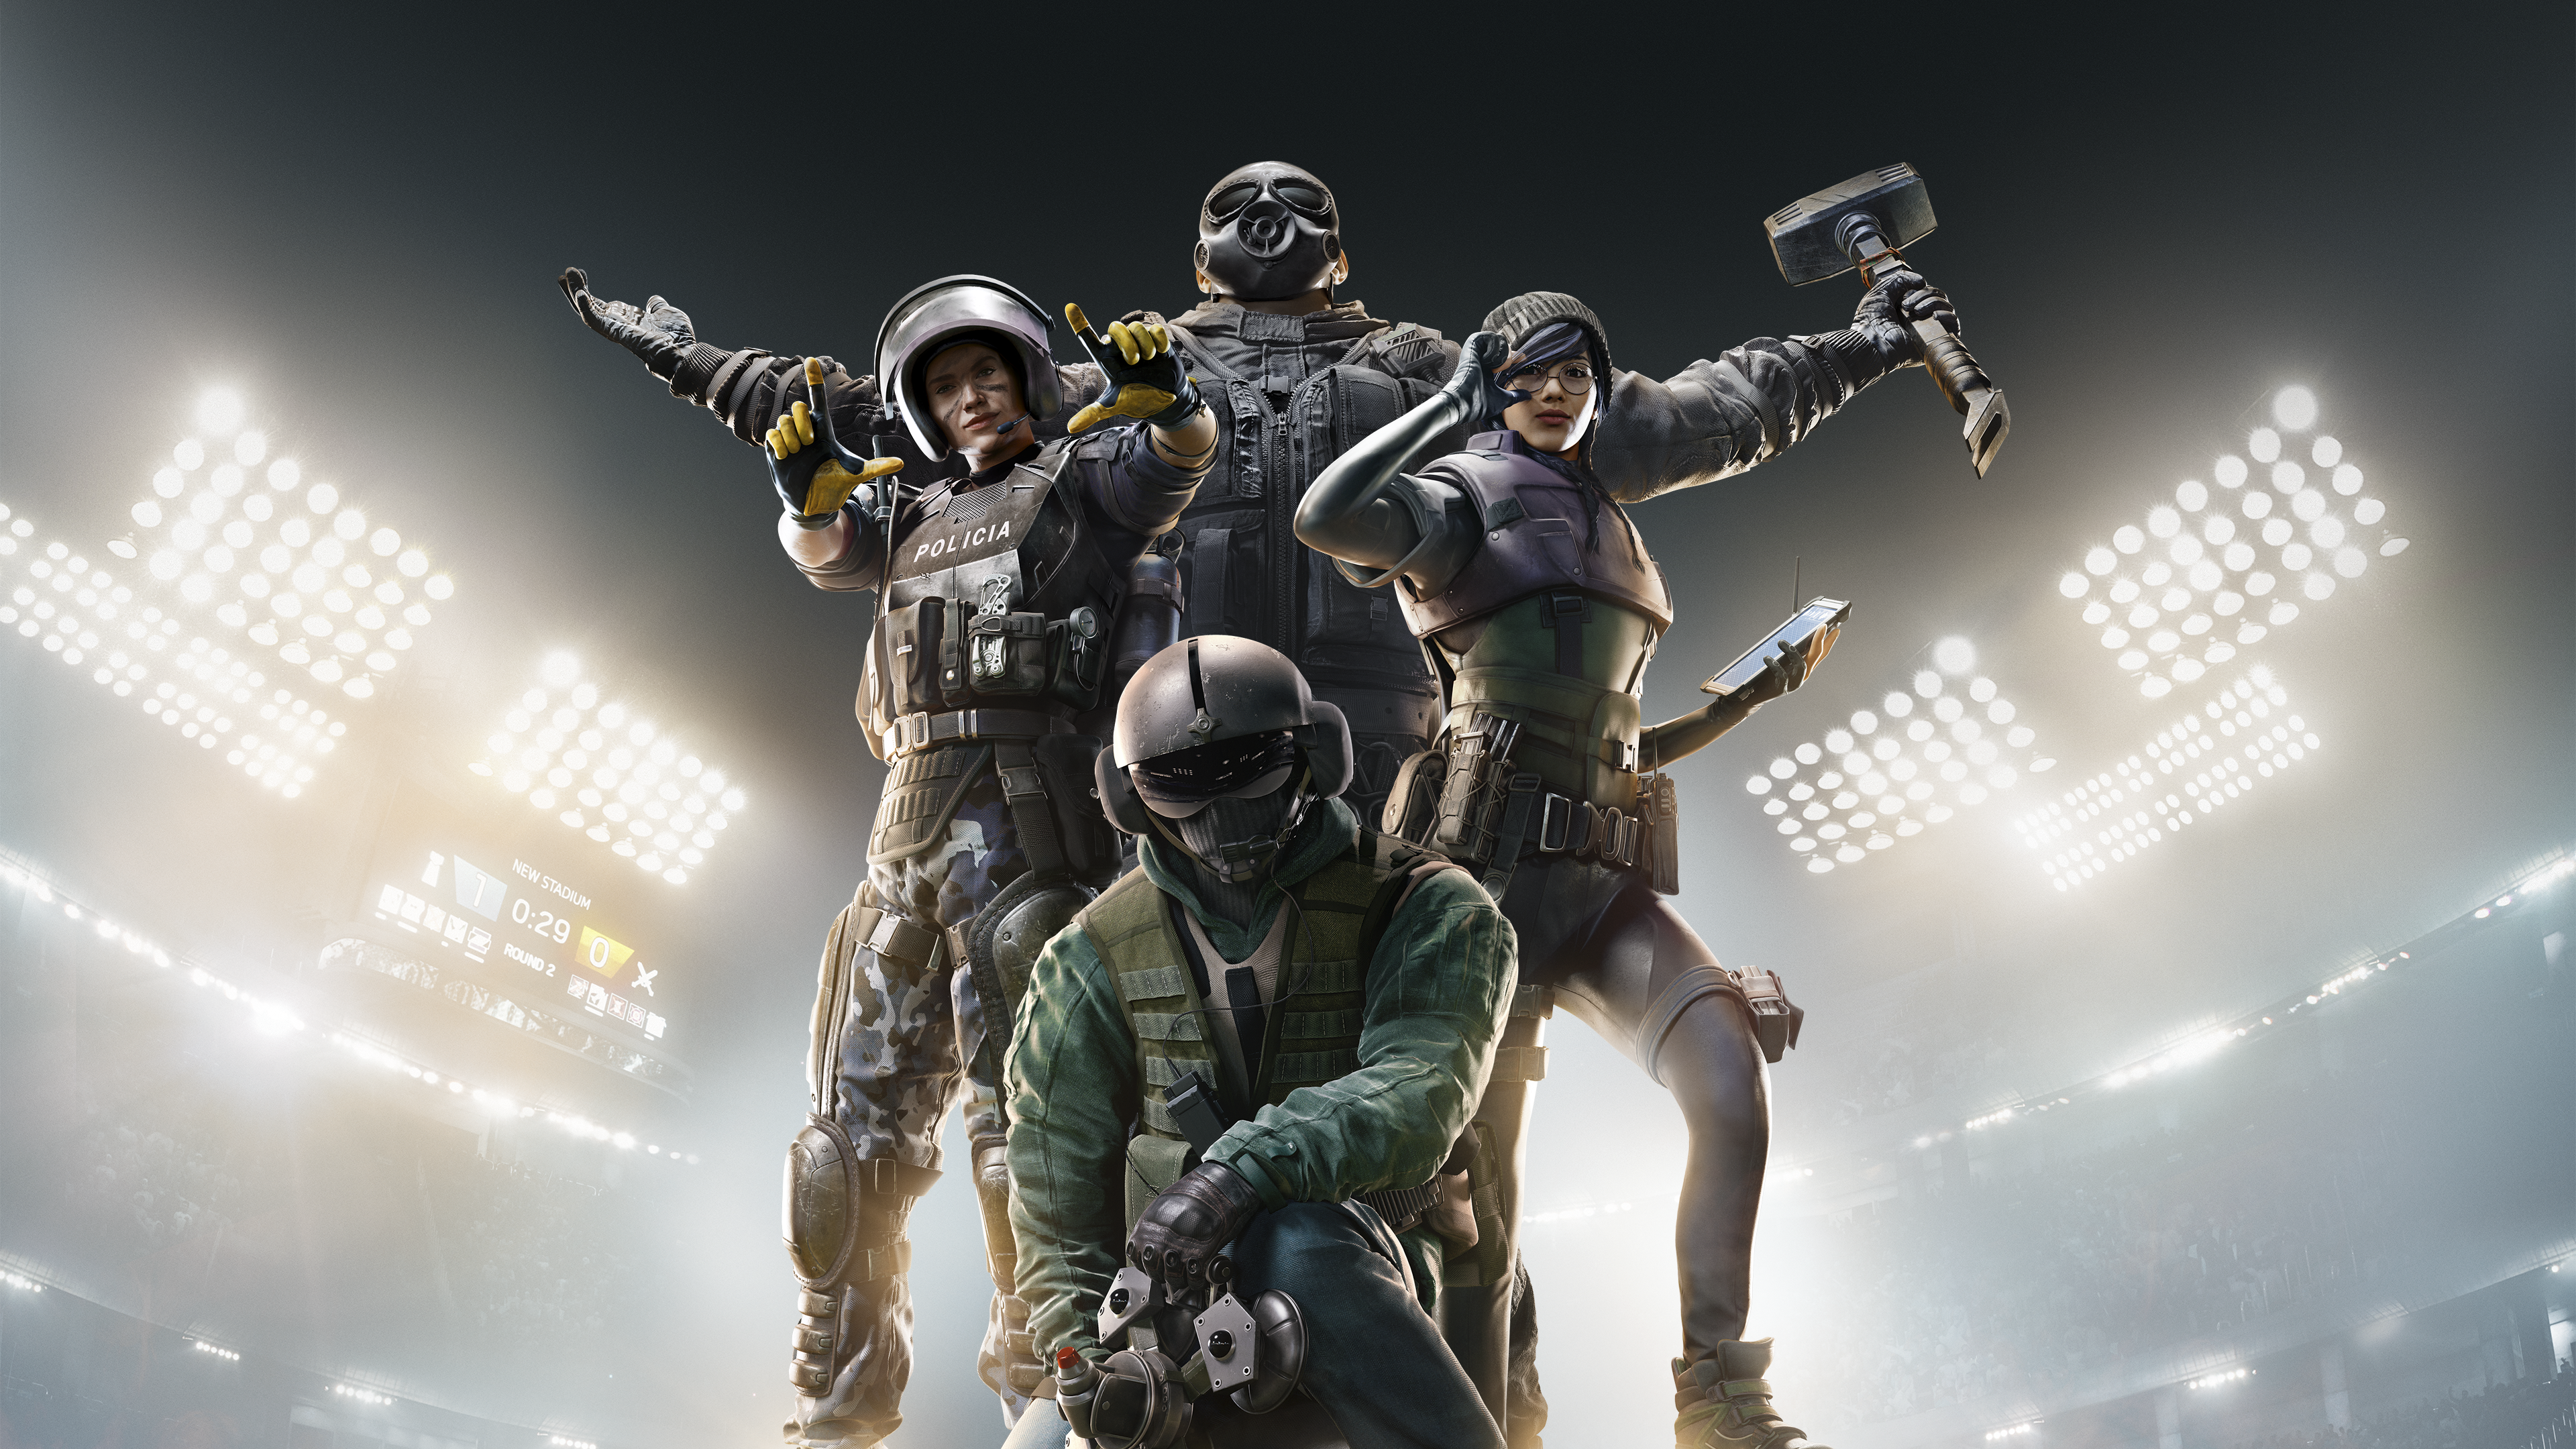 Tom Clancy's Rainbow Six Siege - F11/kruis-toets Art